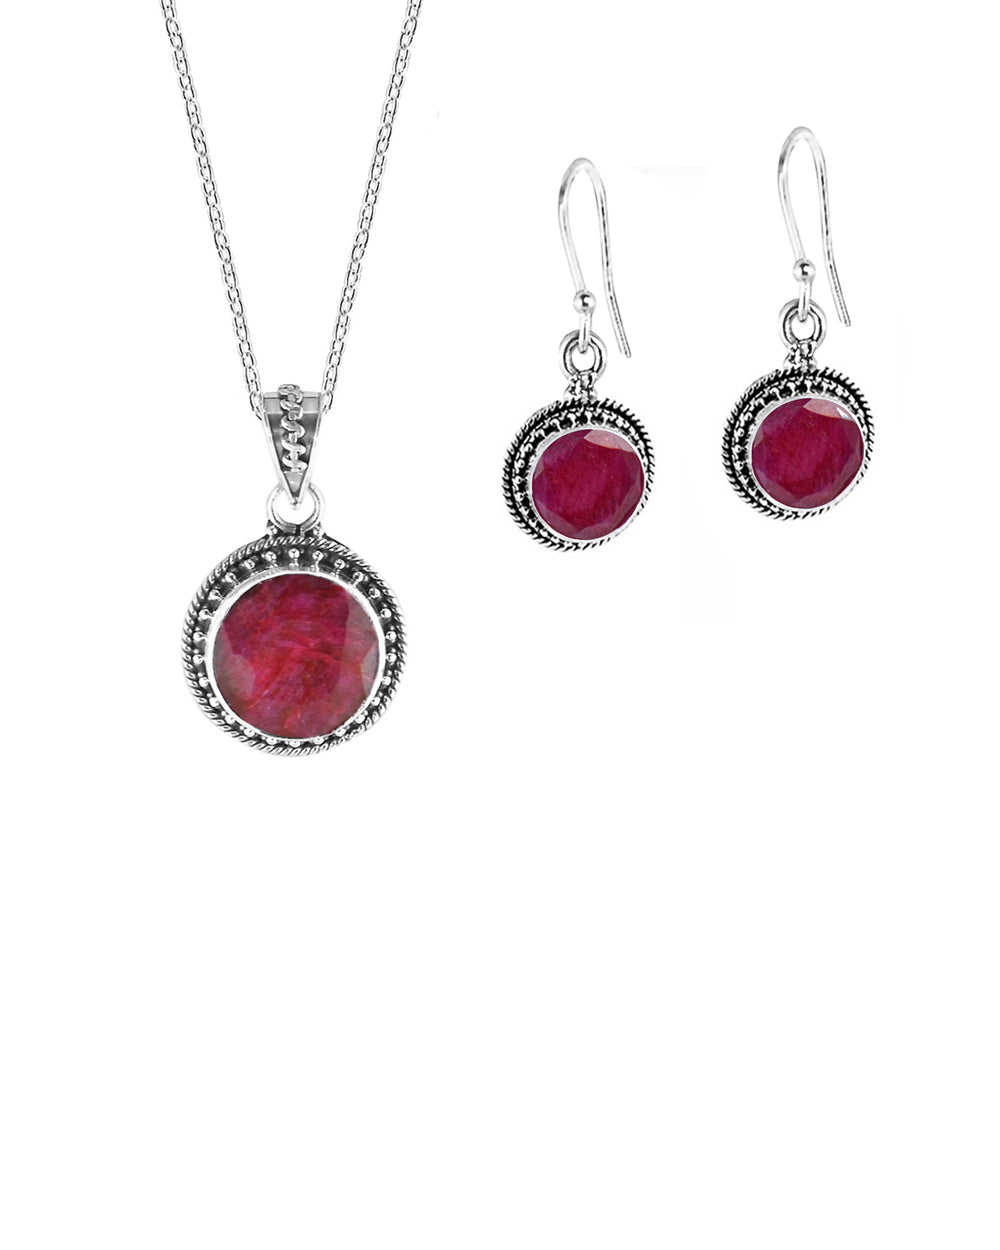 Aurora Raw Ruby Necklace and Earrings Jewelry Set in Sterling Silver